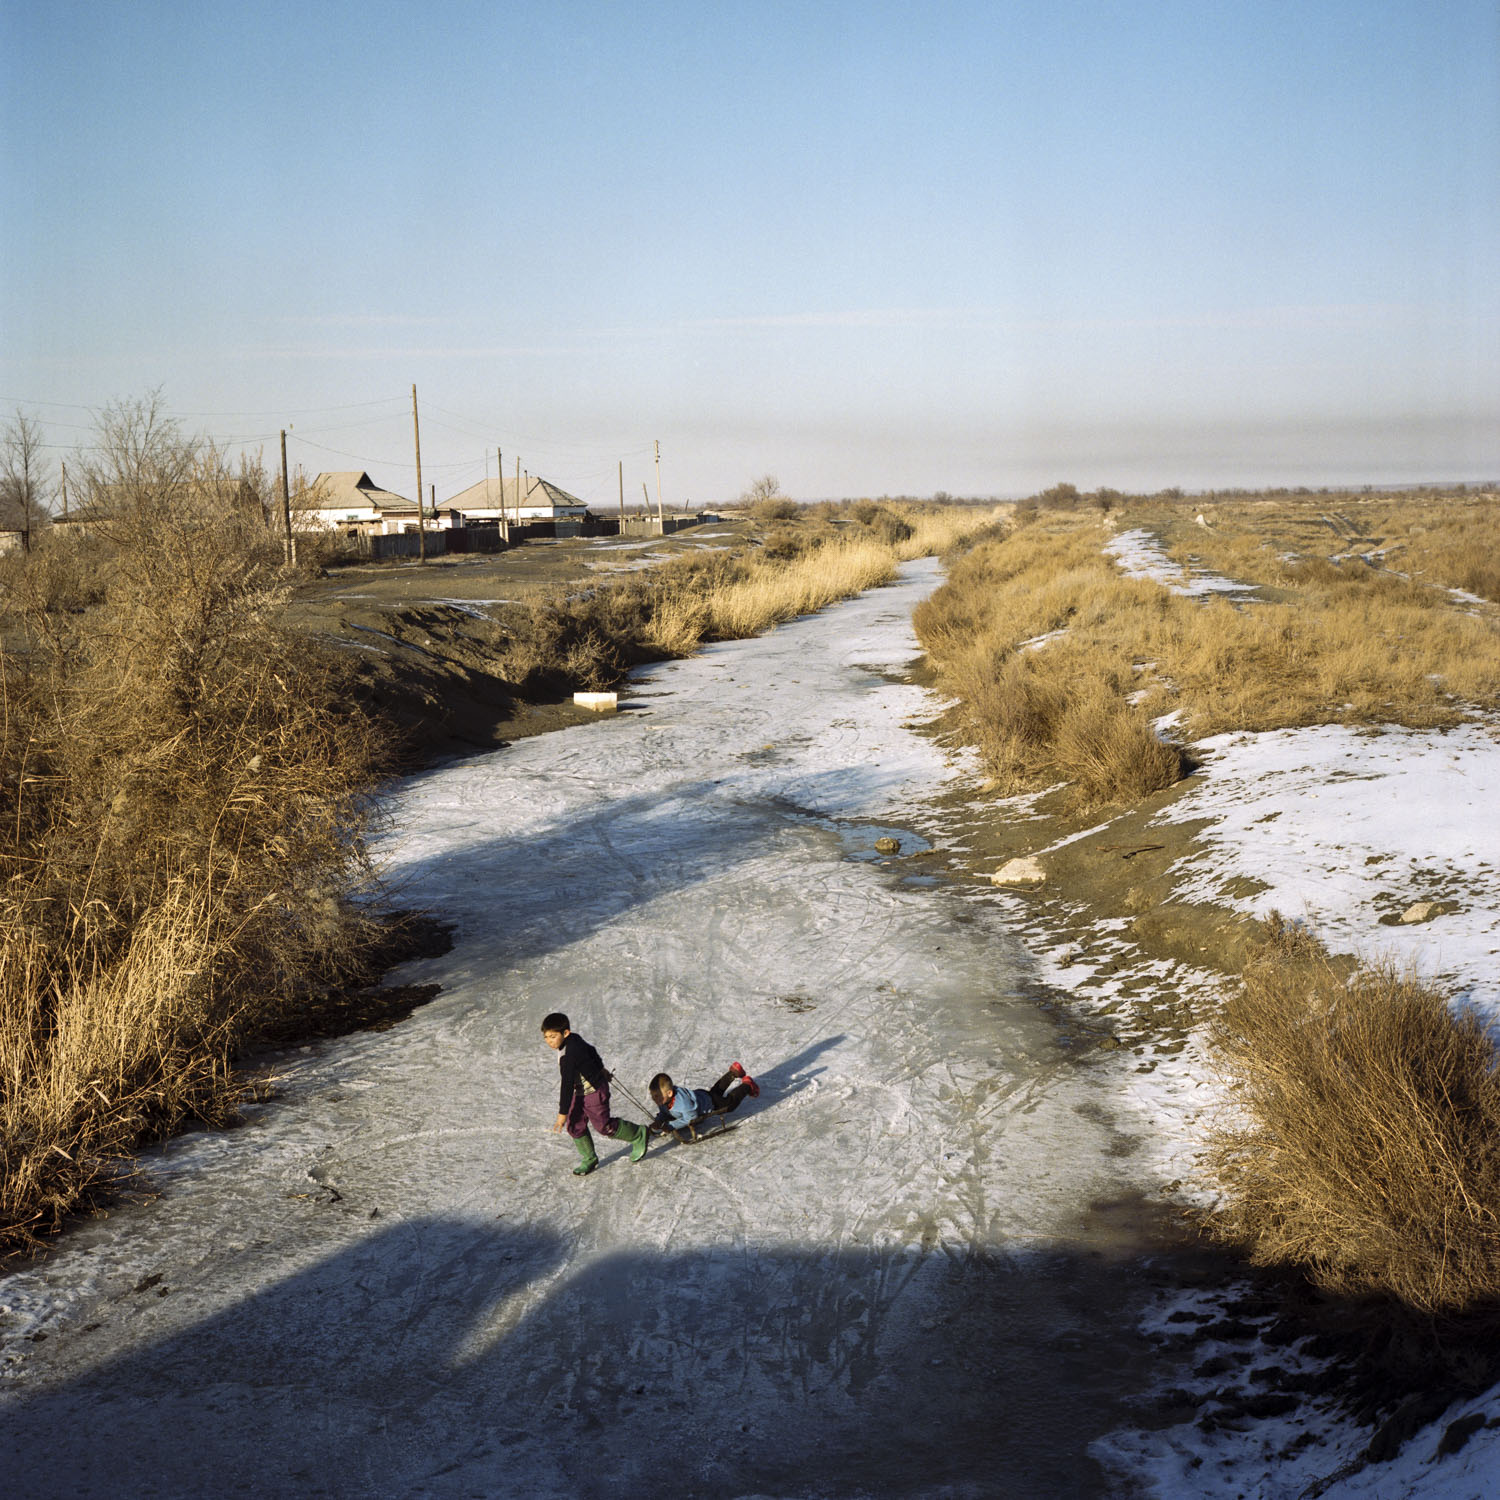 Kazakh children playing on a frozen river in Ushtobe, the first place Koreans were deported to in 1937. Ushtobe, Kazakhstan. December 2014.